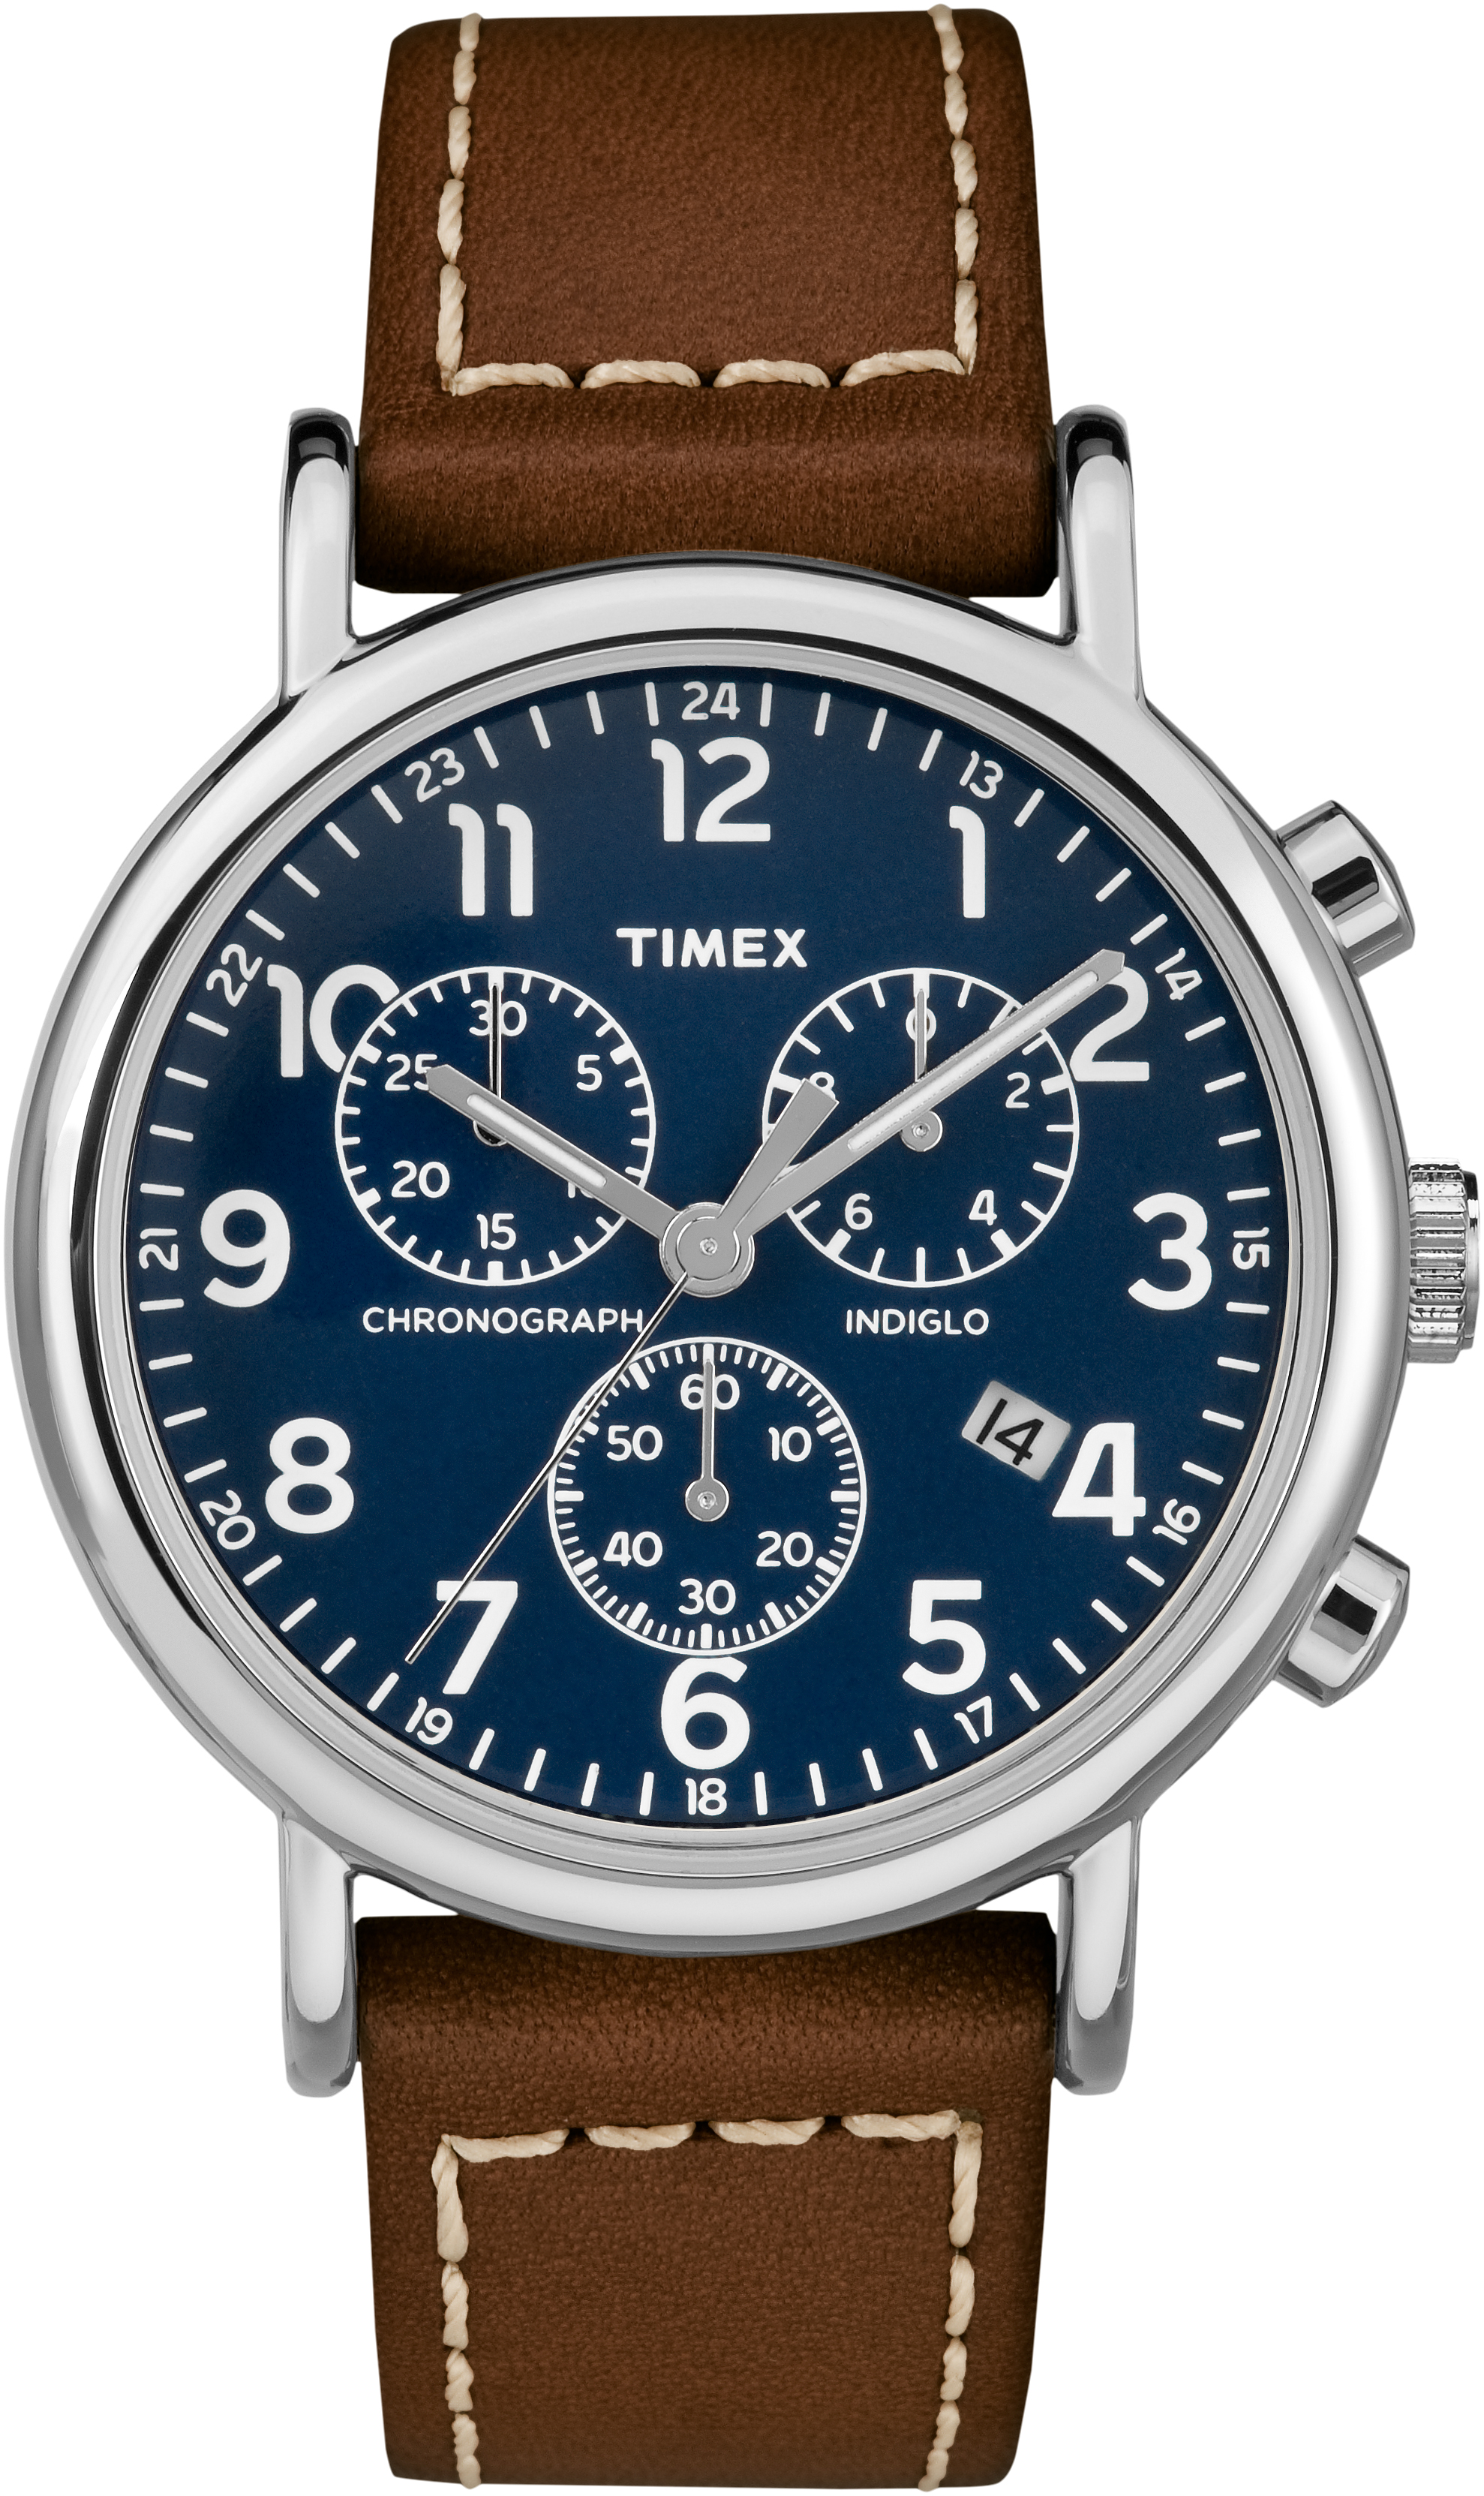 Weekender Chrono Watch for Men - Blue dial & Brown leather band